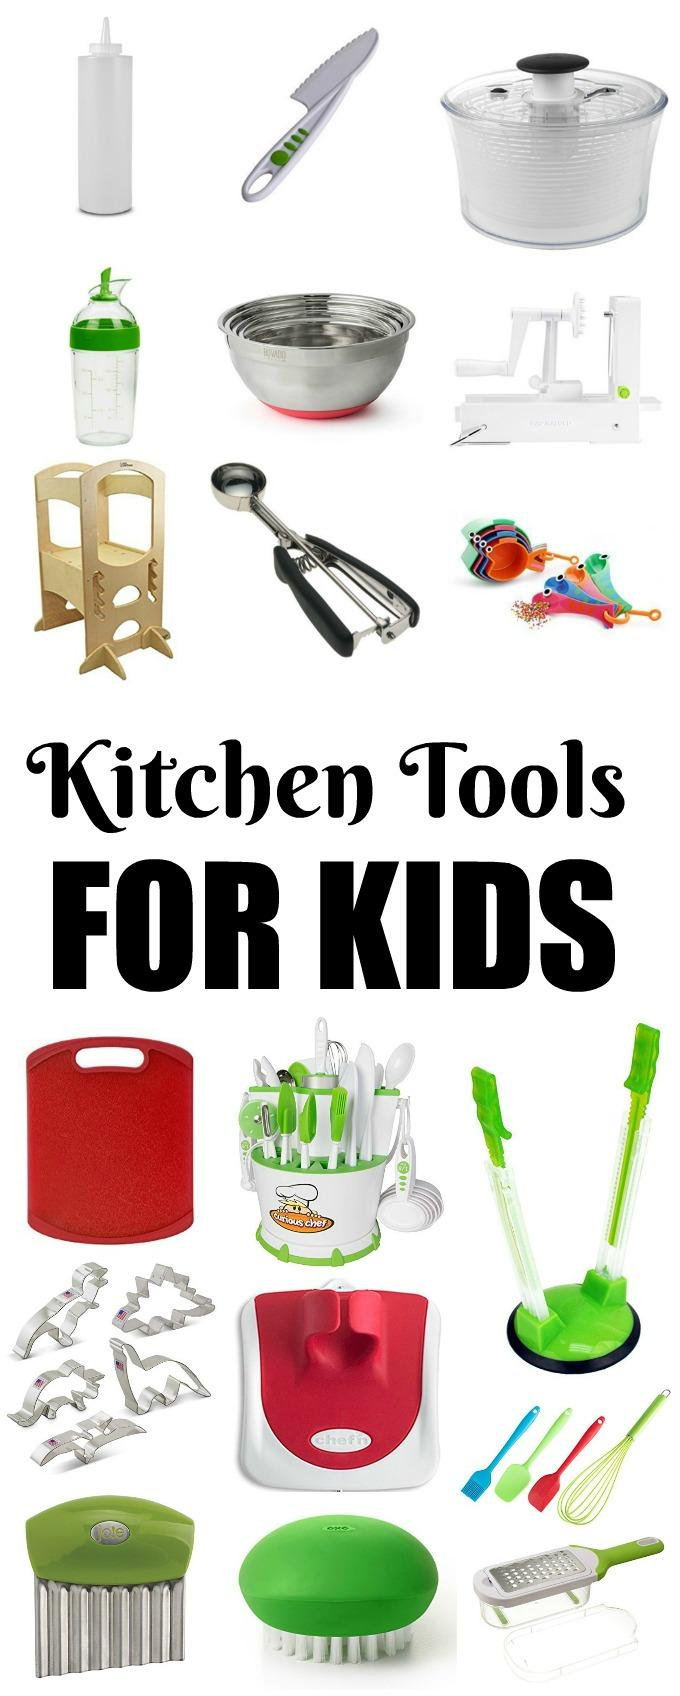 These Kitchen Tools For Kids are perfect for introducing children to the kitchen. Let them get creative, have fun and develop healthy eating habits from a young age!